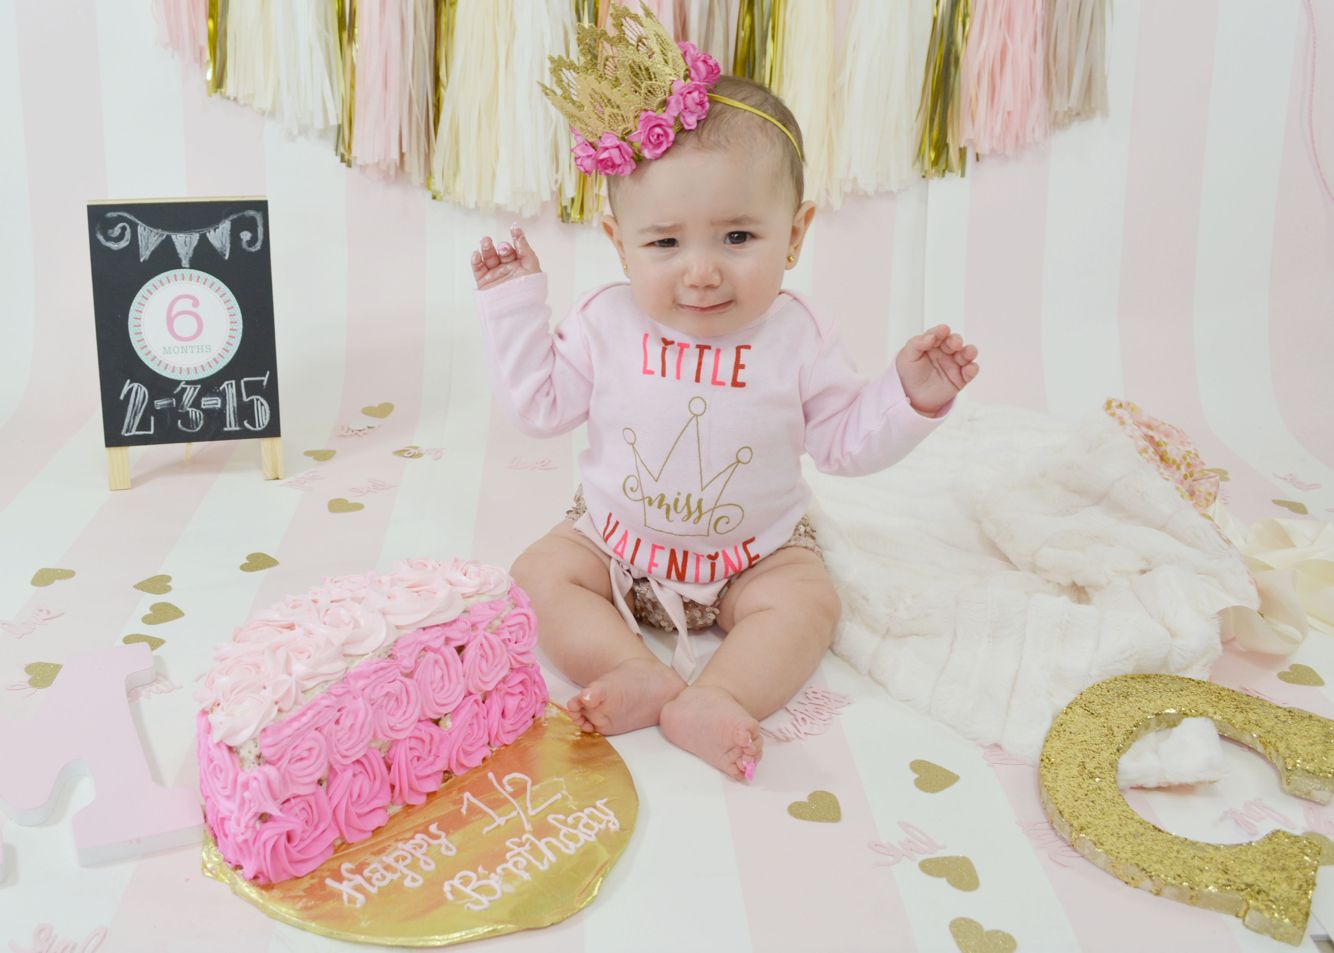 6 month cake smash for my baby pinterest cake smash for 6 month birthday decorations